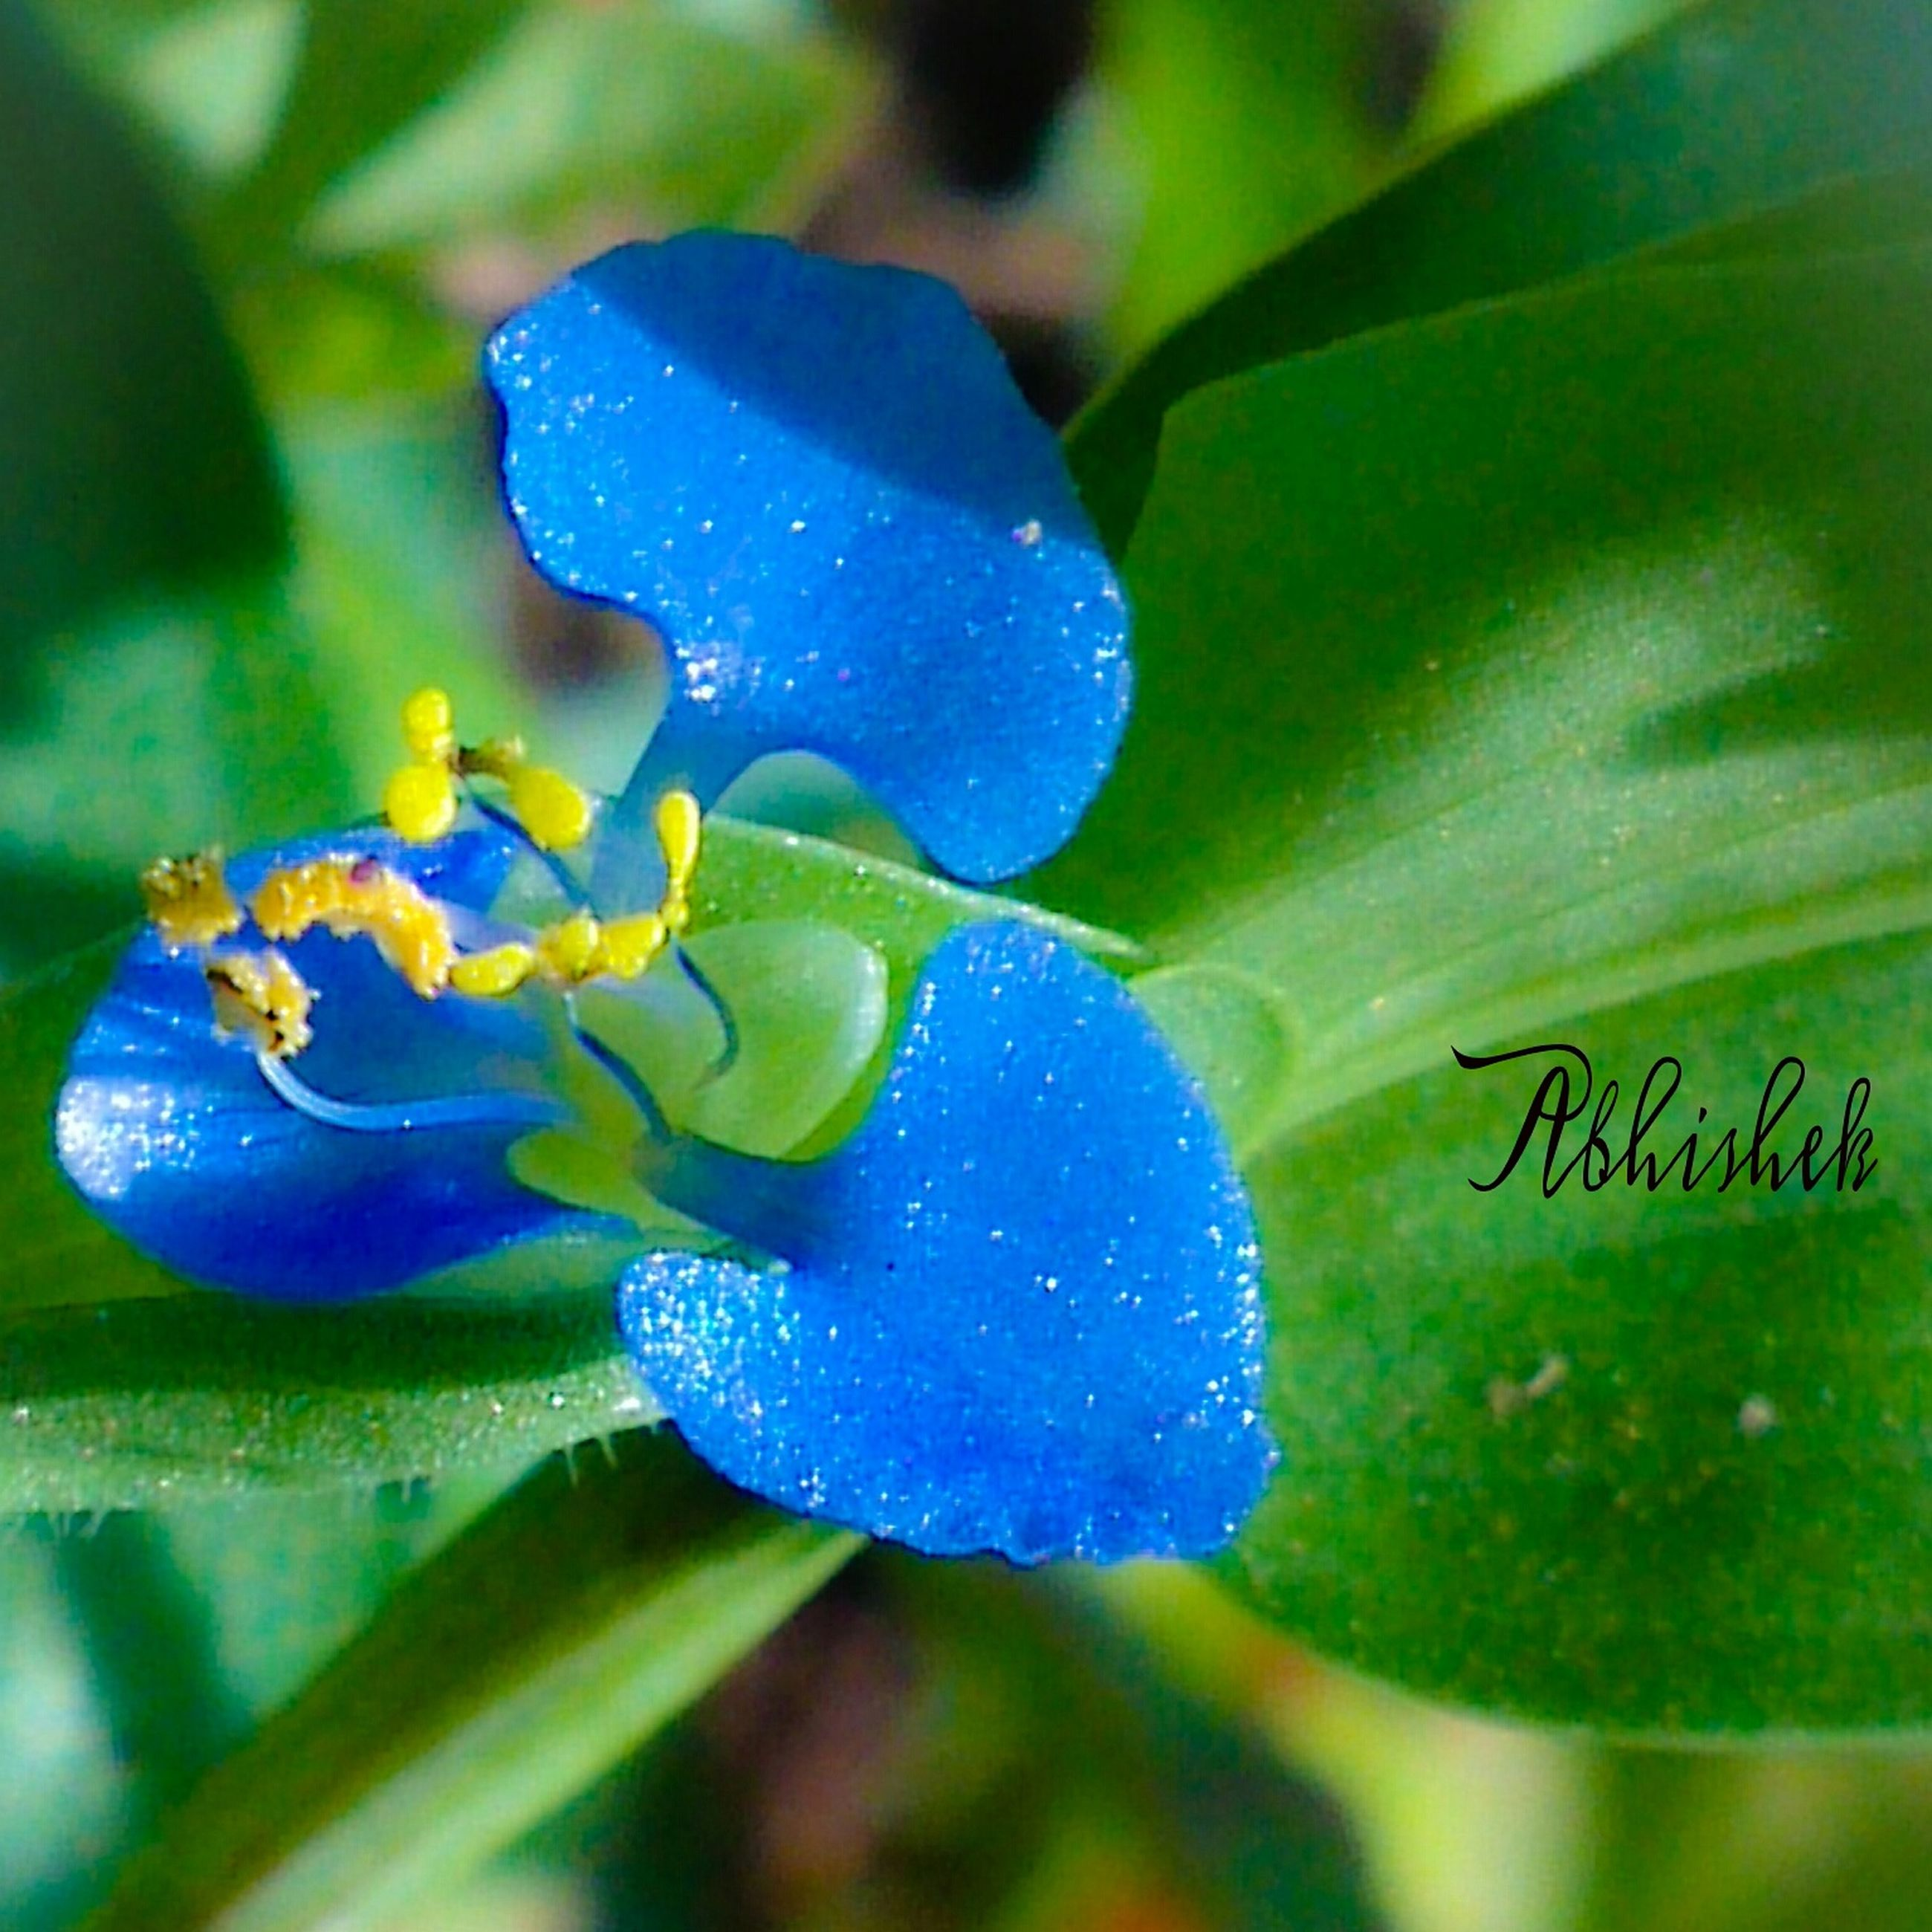 fragility, blue, flower, purple, close-up, freshness, petal, drop, beauty in nature, growth, water, flower head, focus on foreground, wet, nature, plant, green color, selective focus, no people, leaf